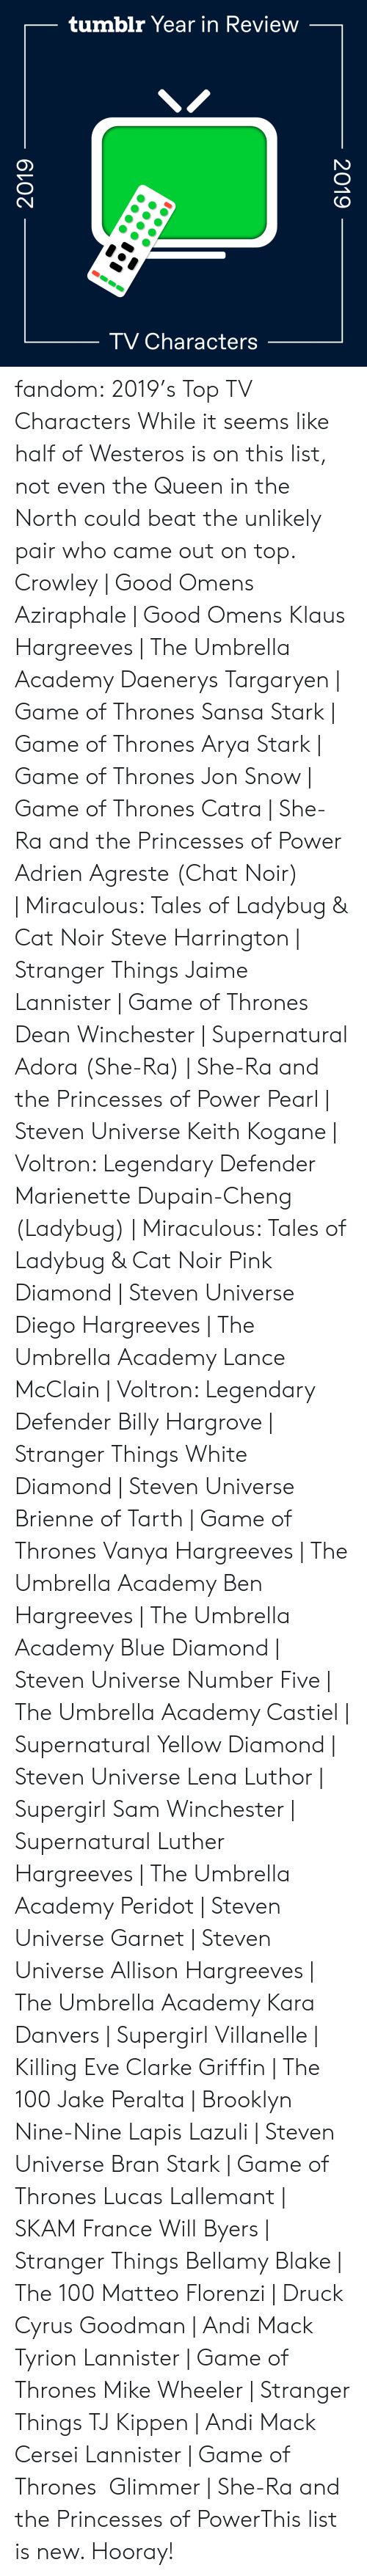 Snow: tumblr Year in Review  TV Characters  2019  2019 fandom:  2019's Top TV Characters  While it seems like half of Westeros is on this list, not even the Queen in the North could beat the unlikely pair who came out on top.  Crowley | Good Omens  Aziraphale | Good Omens  Klaus Hargreeves | The Umbrella Academy  Daenerys Targaryen | Game of Thrones  Sansa Stark | Game of Thrones  Arya Stark | Game of Thrones  Jon Snow | Game of Thrones  Catra | She-Ra and the Princesses of Power  Adrien Agreste (Chat Noir) | Miraculous: Tales of Ladybug & Cat Noir  Steve Harrington | Stranger Things  Jaime Lannister | Game of Thrones  Dean Winchester | Supernatural  Adora (She-Ra) | She-Ra and the Princesses of Power  Pearl | Steven Universe  Keith Kogane | Voltron: Legendary Defender  Marienette Dupain-Cheng (Ladybug) | Miraculous: Tales of Ladybug & Cat Noir  Pink Diamond | Steven Universe  Diego Hargreeves | The Umbrella Academy  Lance McClain | Voltron: Legendary Defender  Billy Hargrove | Stranger Things  White Diamond | Steven Universe  Brienne of Tarth | Game of Thrones  Vanya Hargreeves | The Umbrella Academy  Ben Hargreeves | The Umbrella Academy  Blue Diamond | Steven Universe  Number Five | The Umbrella Academy  Castiel | Supernatural  Yellow Diamond | Steven Universe  Lena Luthor | Supergirl  Sam Winchester | Supernatural  Luther Hargreeves | The Umbrella Academy  Peridot | Steven Universe  Garnet | Steven Universe  Allison Hargreeves | The Umbrella Academy  Kara Danvers | Supergirl  Villanelle | Killing Eve  Clarke Griffin | The 100  Jake Peralta | Brooklyn Nine-Nine  Lapis Lazuli | Steven Universe  Bran Stark | Game of Thrones  Lucas Lallemant | SKAM France  Will Byers | Stranger Things  Bellamy Blake | The 100  Matteo Florenzi | Druck  Cyrus Goodman | Andi Mack  Tyrion Lannister | Game of Thrones  Mike Wheeler | Stranger Things  TJ Kippen | Andi Mack  Cersei Lannister | Game of Thrones  Glimmer | She-Ra and the Princesses of PowerThis list is new. Hooray!